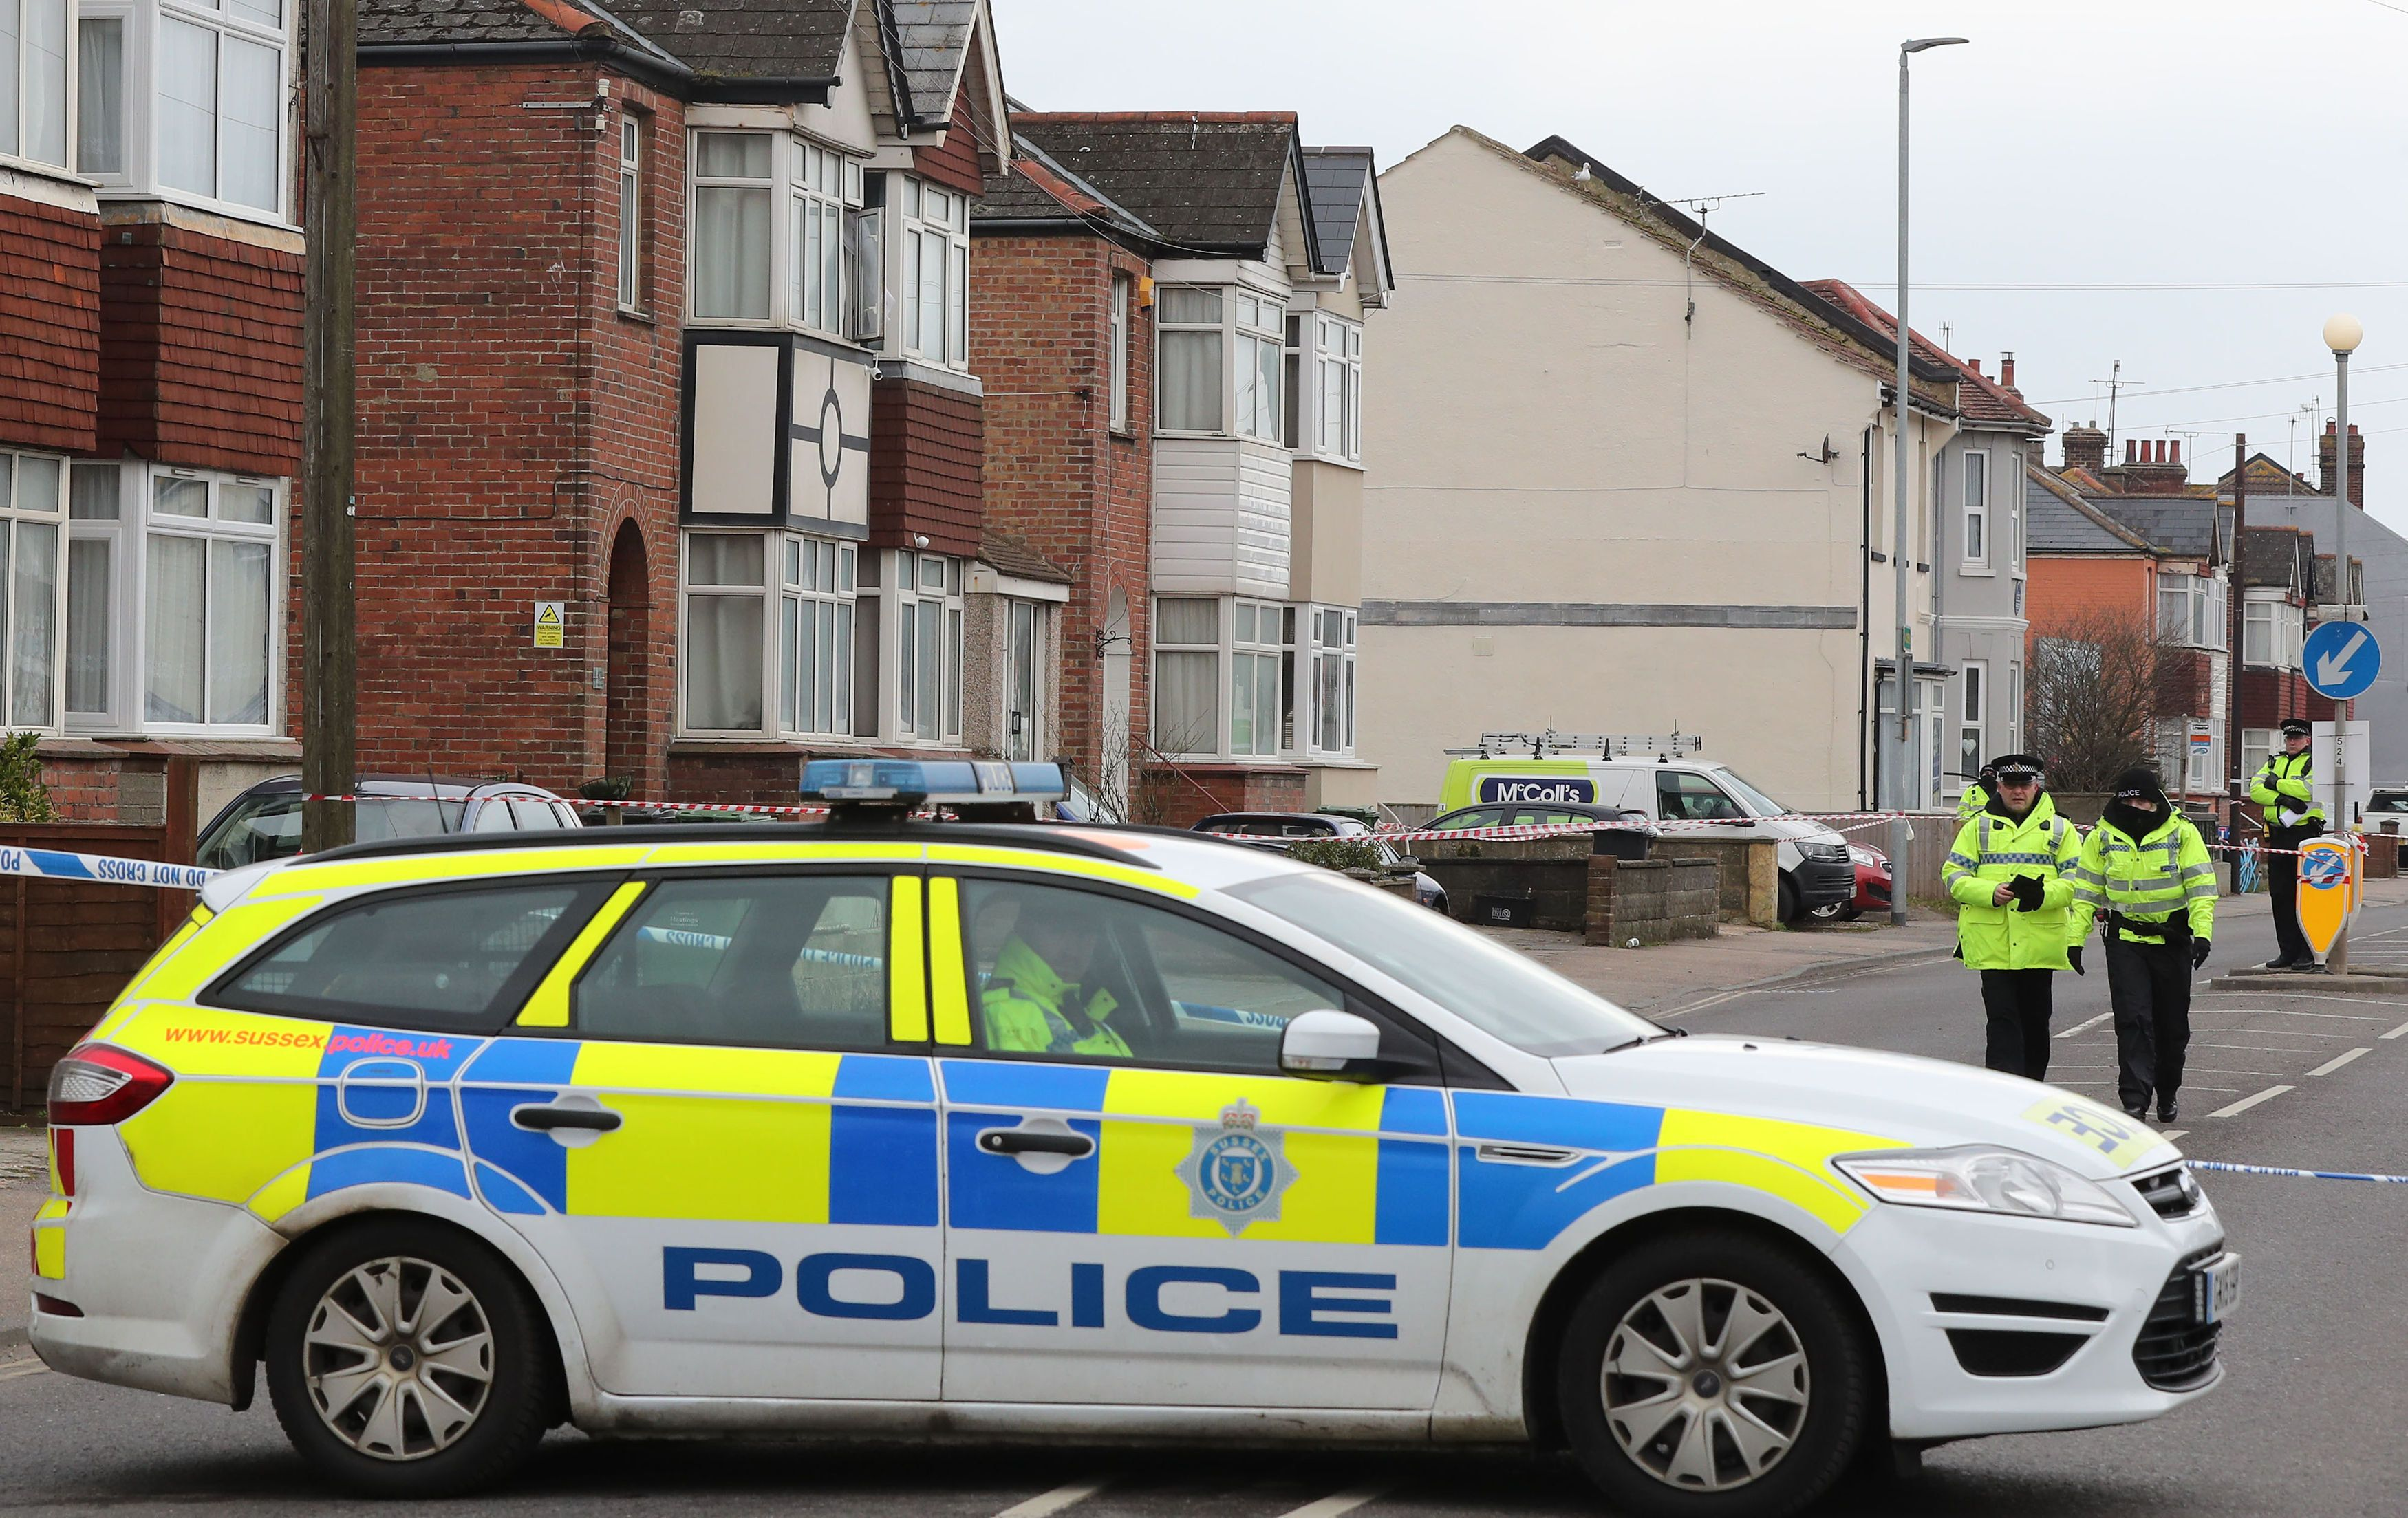 Two women shot dead at house in East Sussex